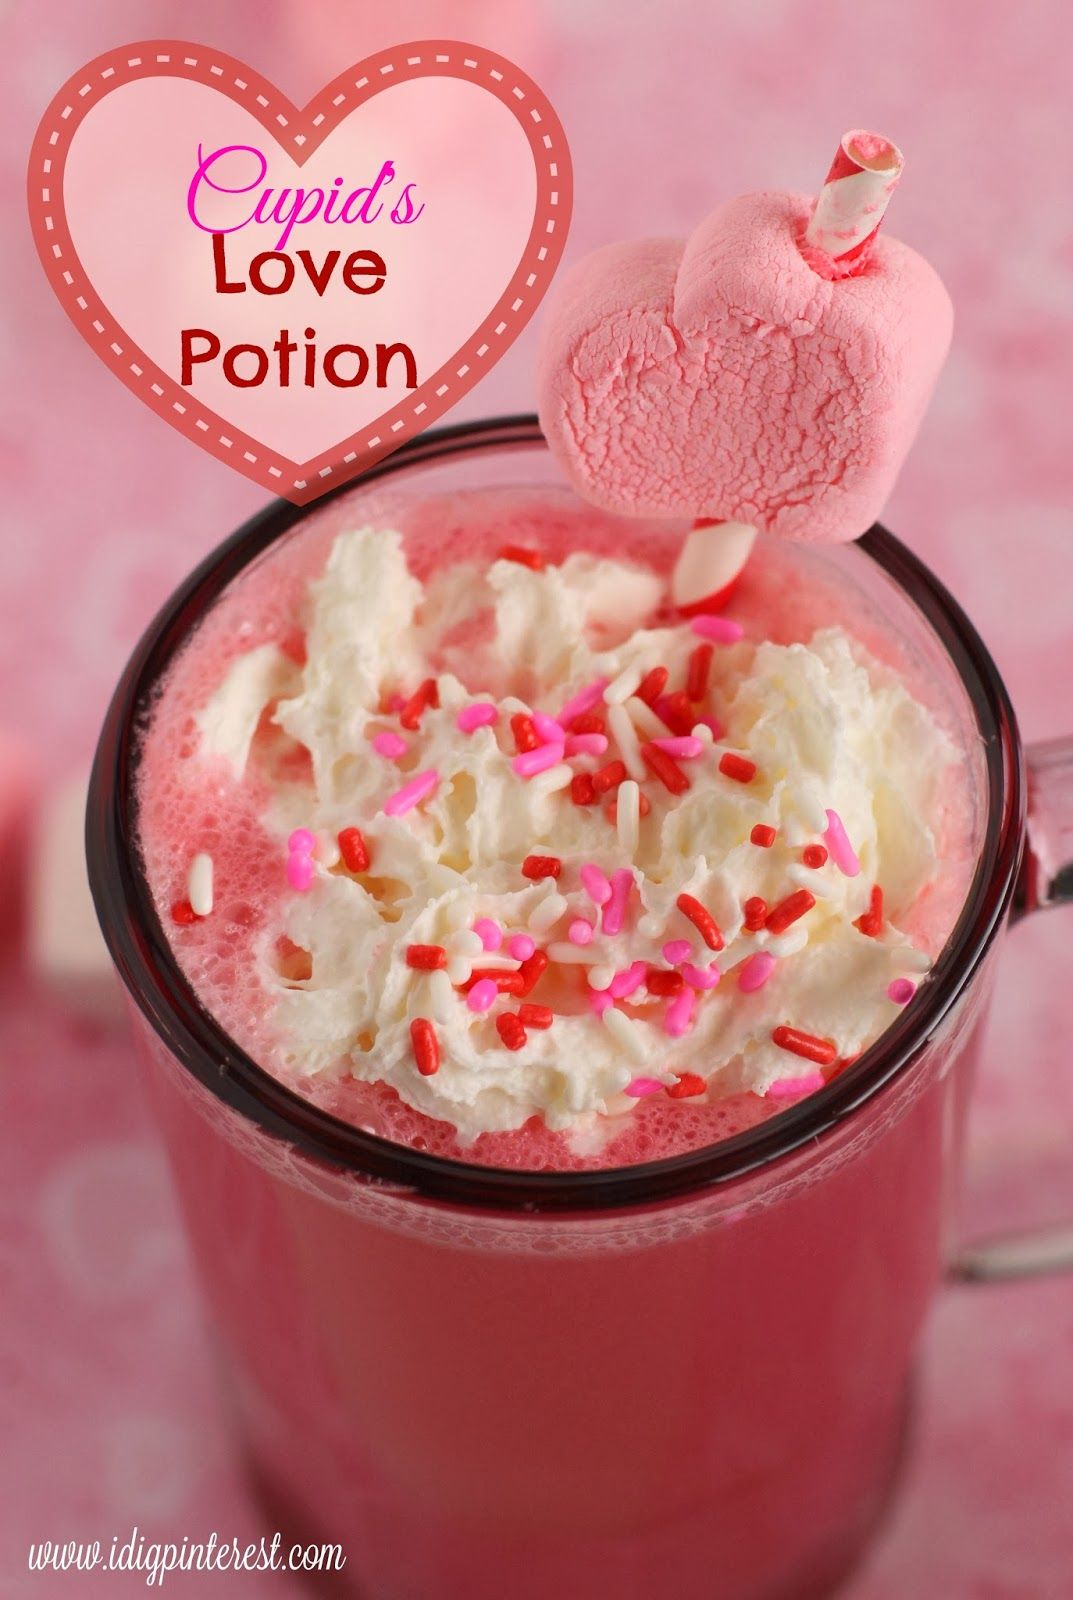 Valentine Cocktail Recipes: Cupid's Love Potion Valentine's Drink (Non-Alcoholic